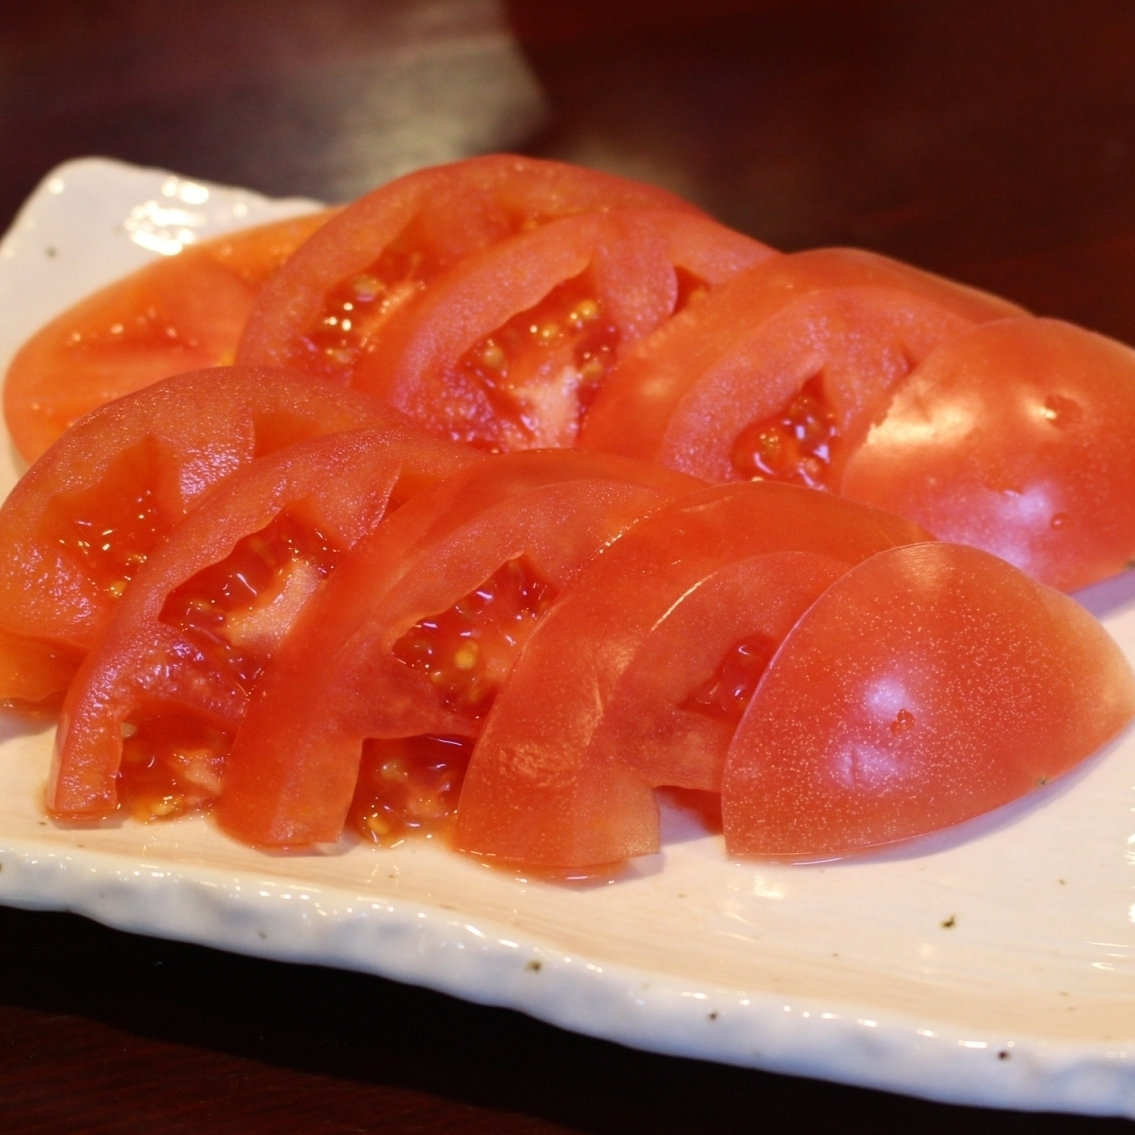 Cooled tomatoes